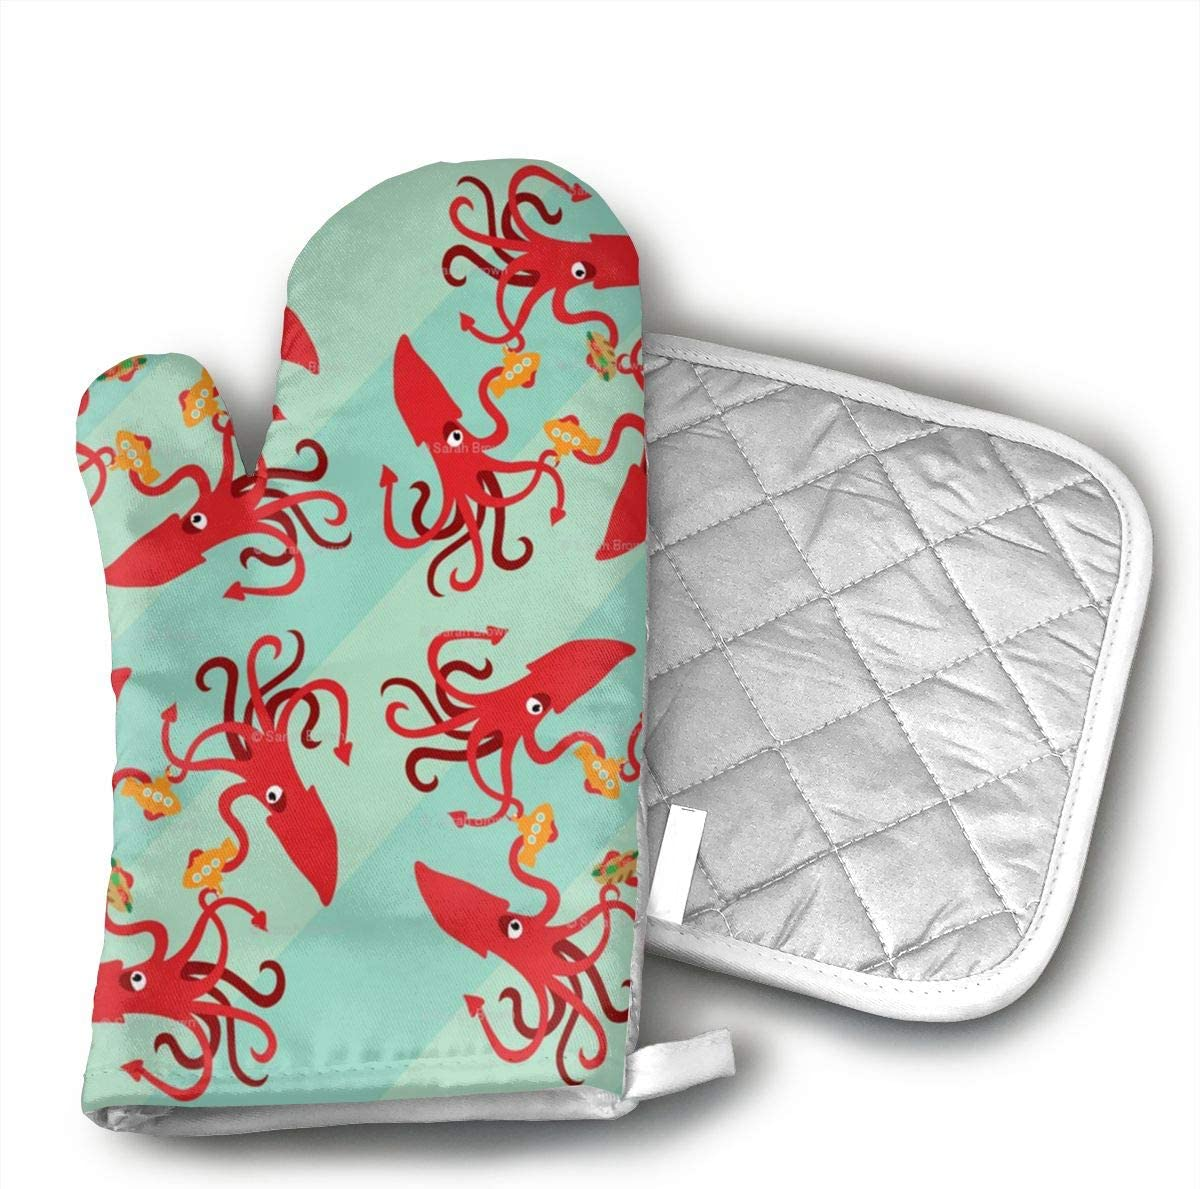 NOT The Giant Squid Eats Subs Cotton Heat Resistant Double Oven Mitts/Gloves Potholder Extra for Kitchen Cooking Baking